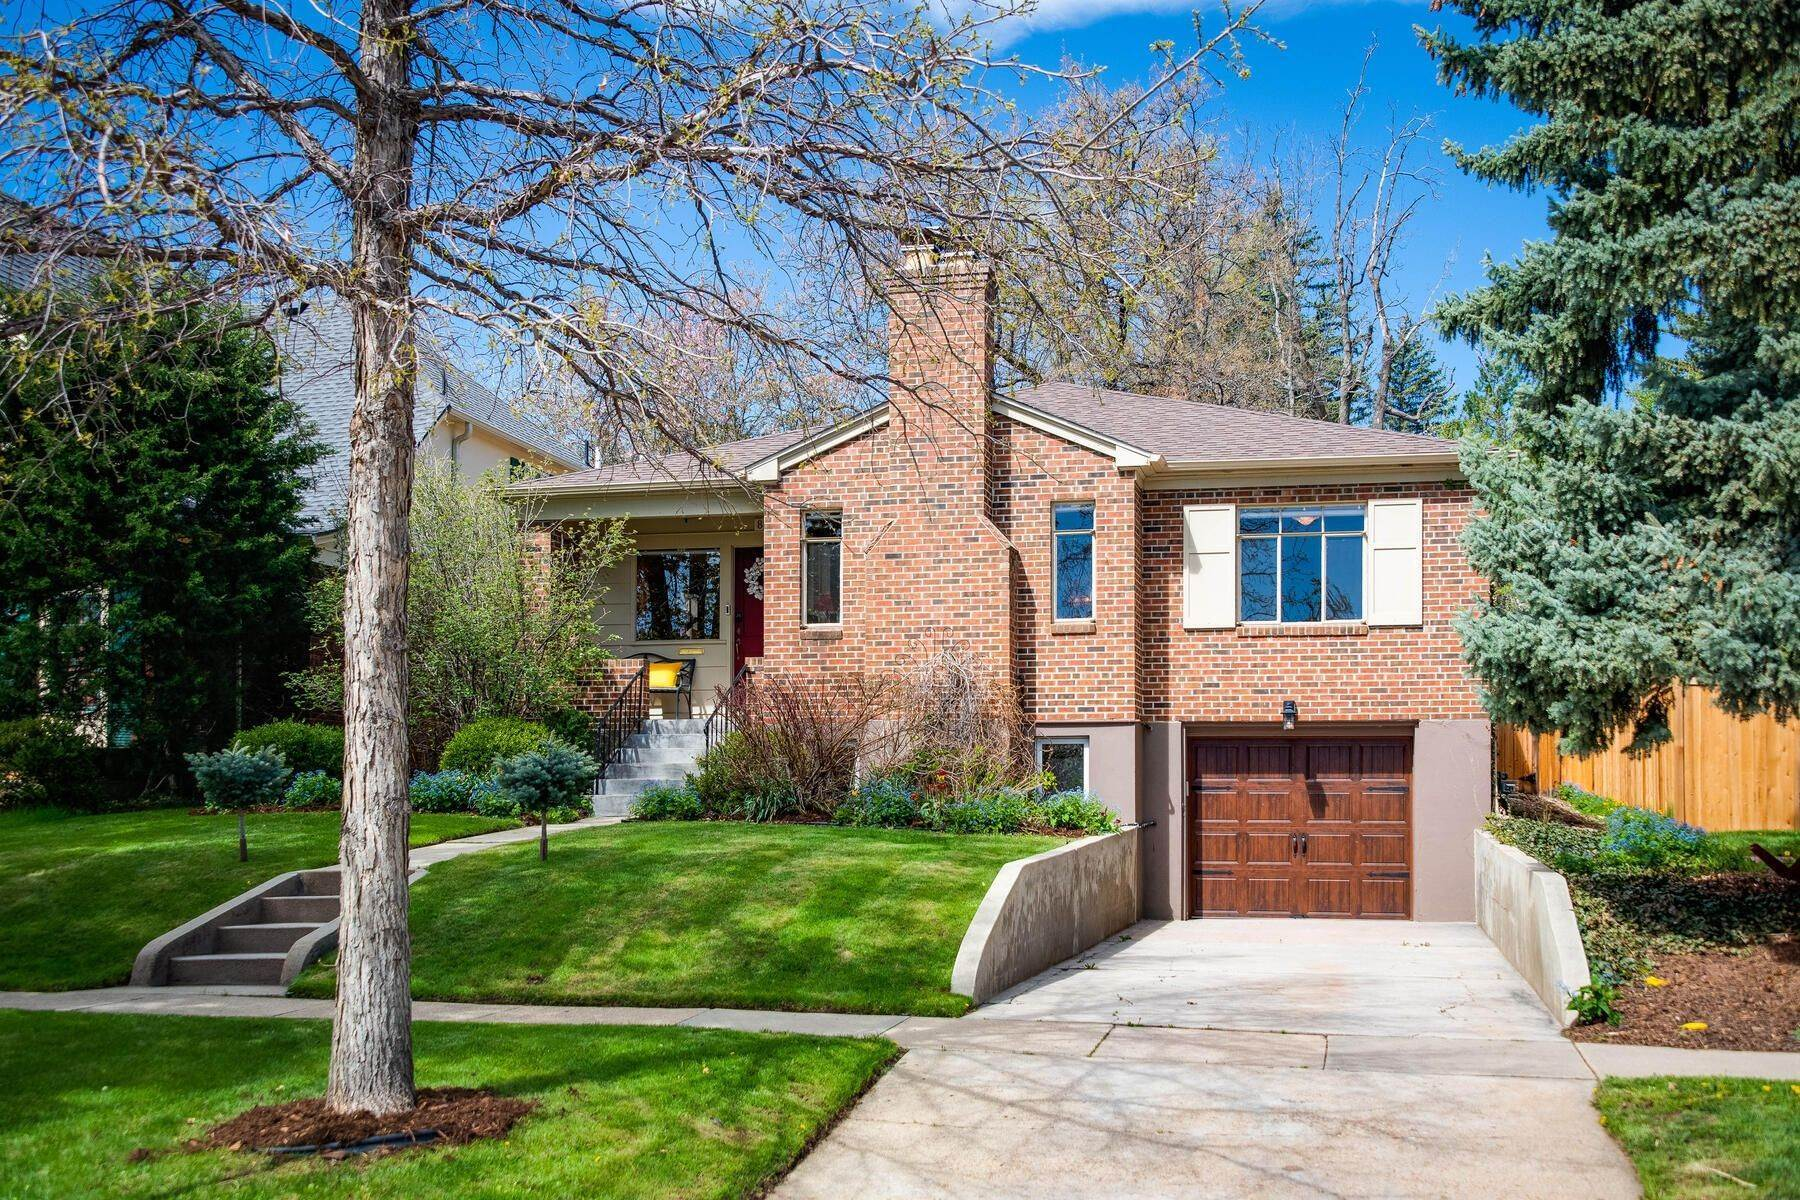 Single Family Homes for Sale at 865 13th Street, Boulder, CO, 80302 865 13th Street Boulder, Colorado 80302 United States